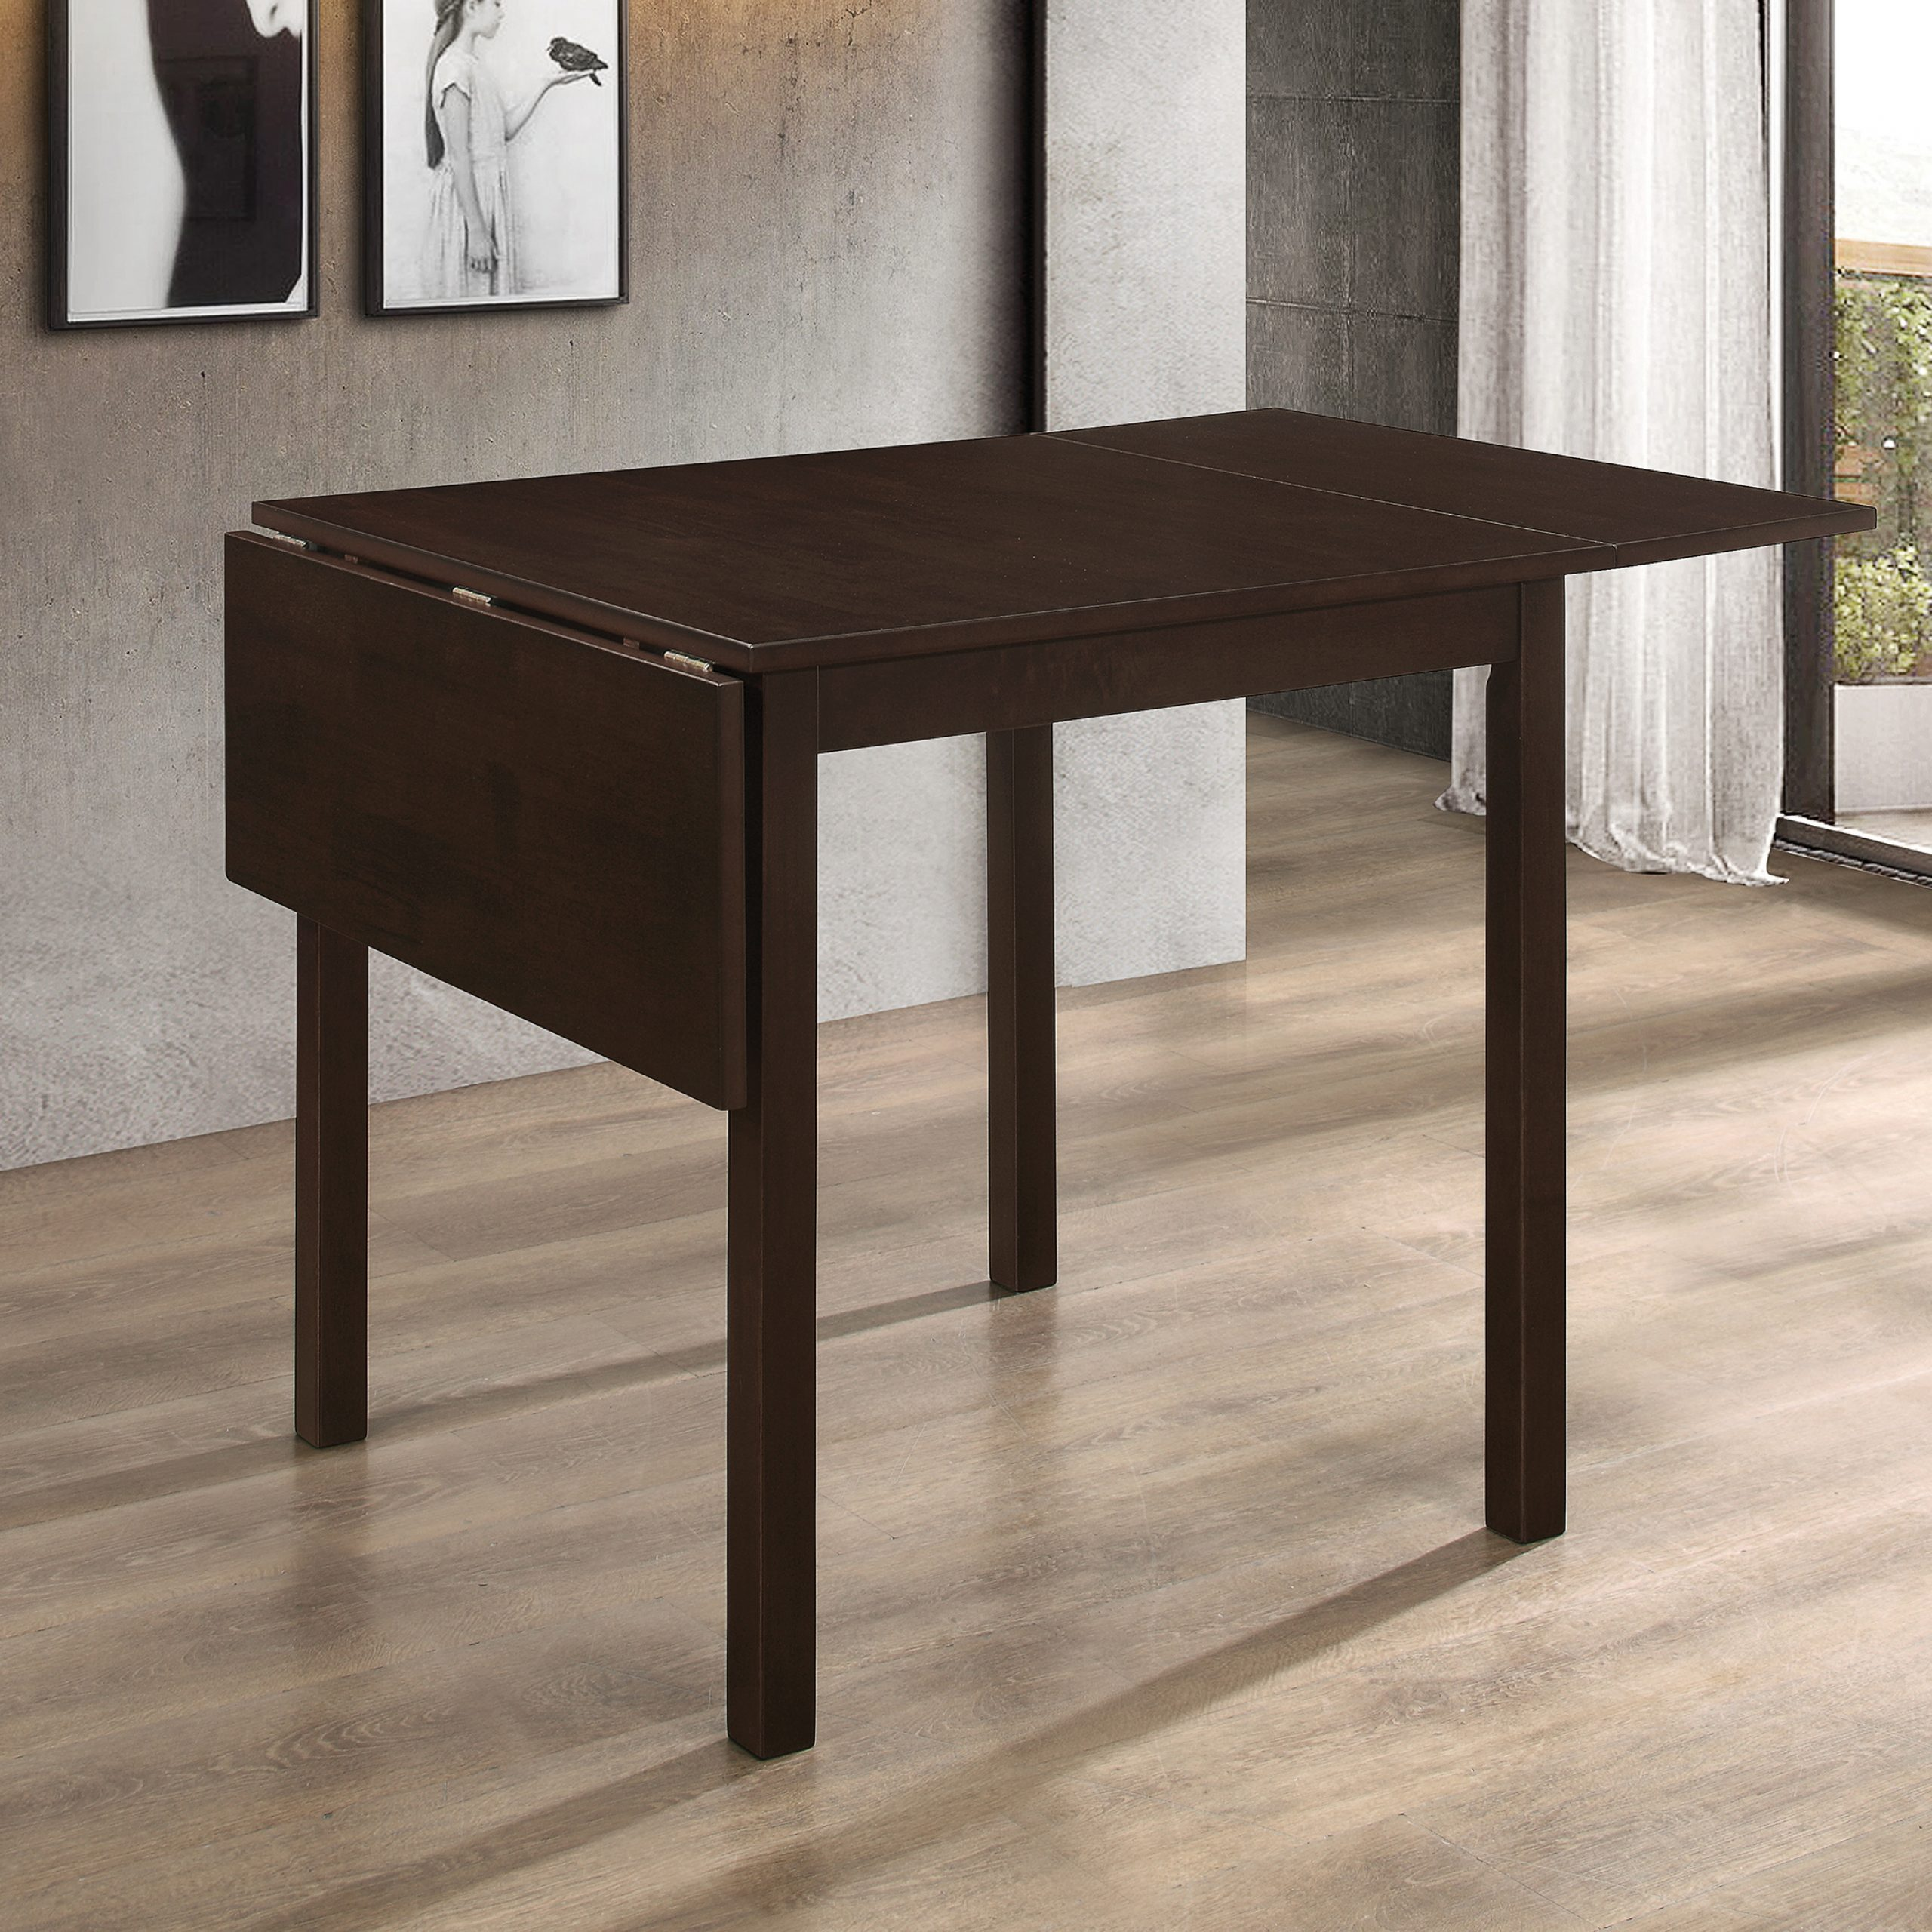 Transitional Drop Leaf Casual Dining Tables Pertaining To Trendy Kelso Rectangular Dining Table With Drop Leaf Cappuccino (View 17 of 25)